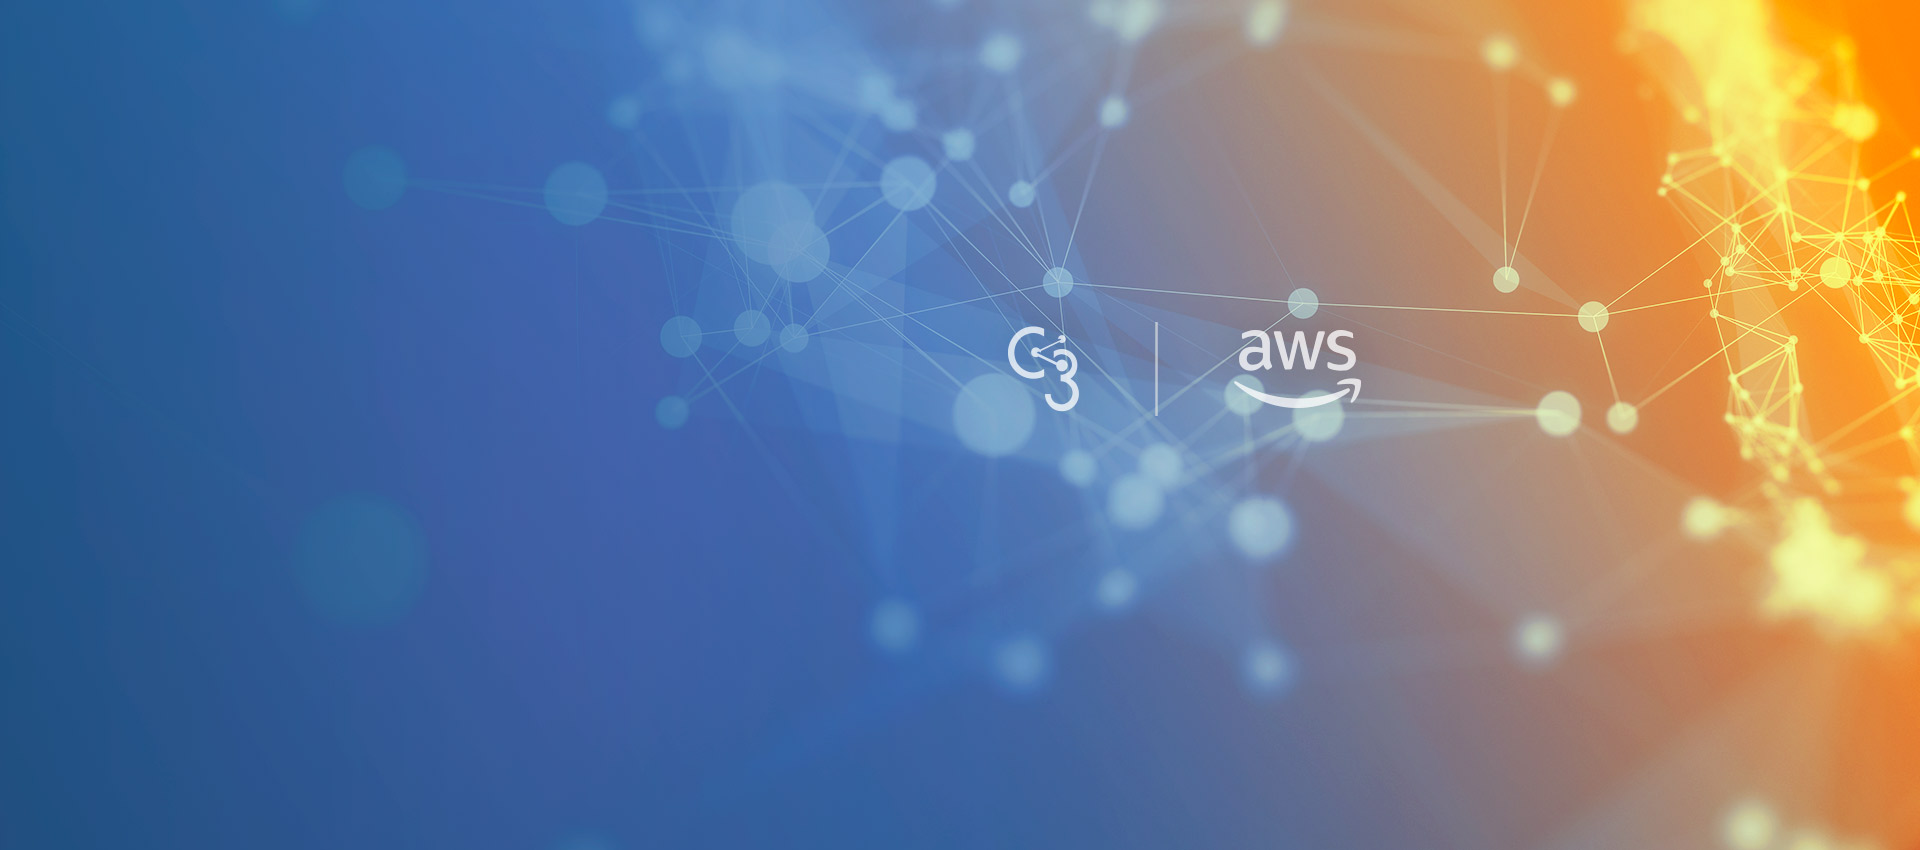 C3 - C3 and AWS Expand Collaboration to Drive Enterprise Artificial Intelligence Adoption